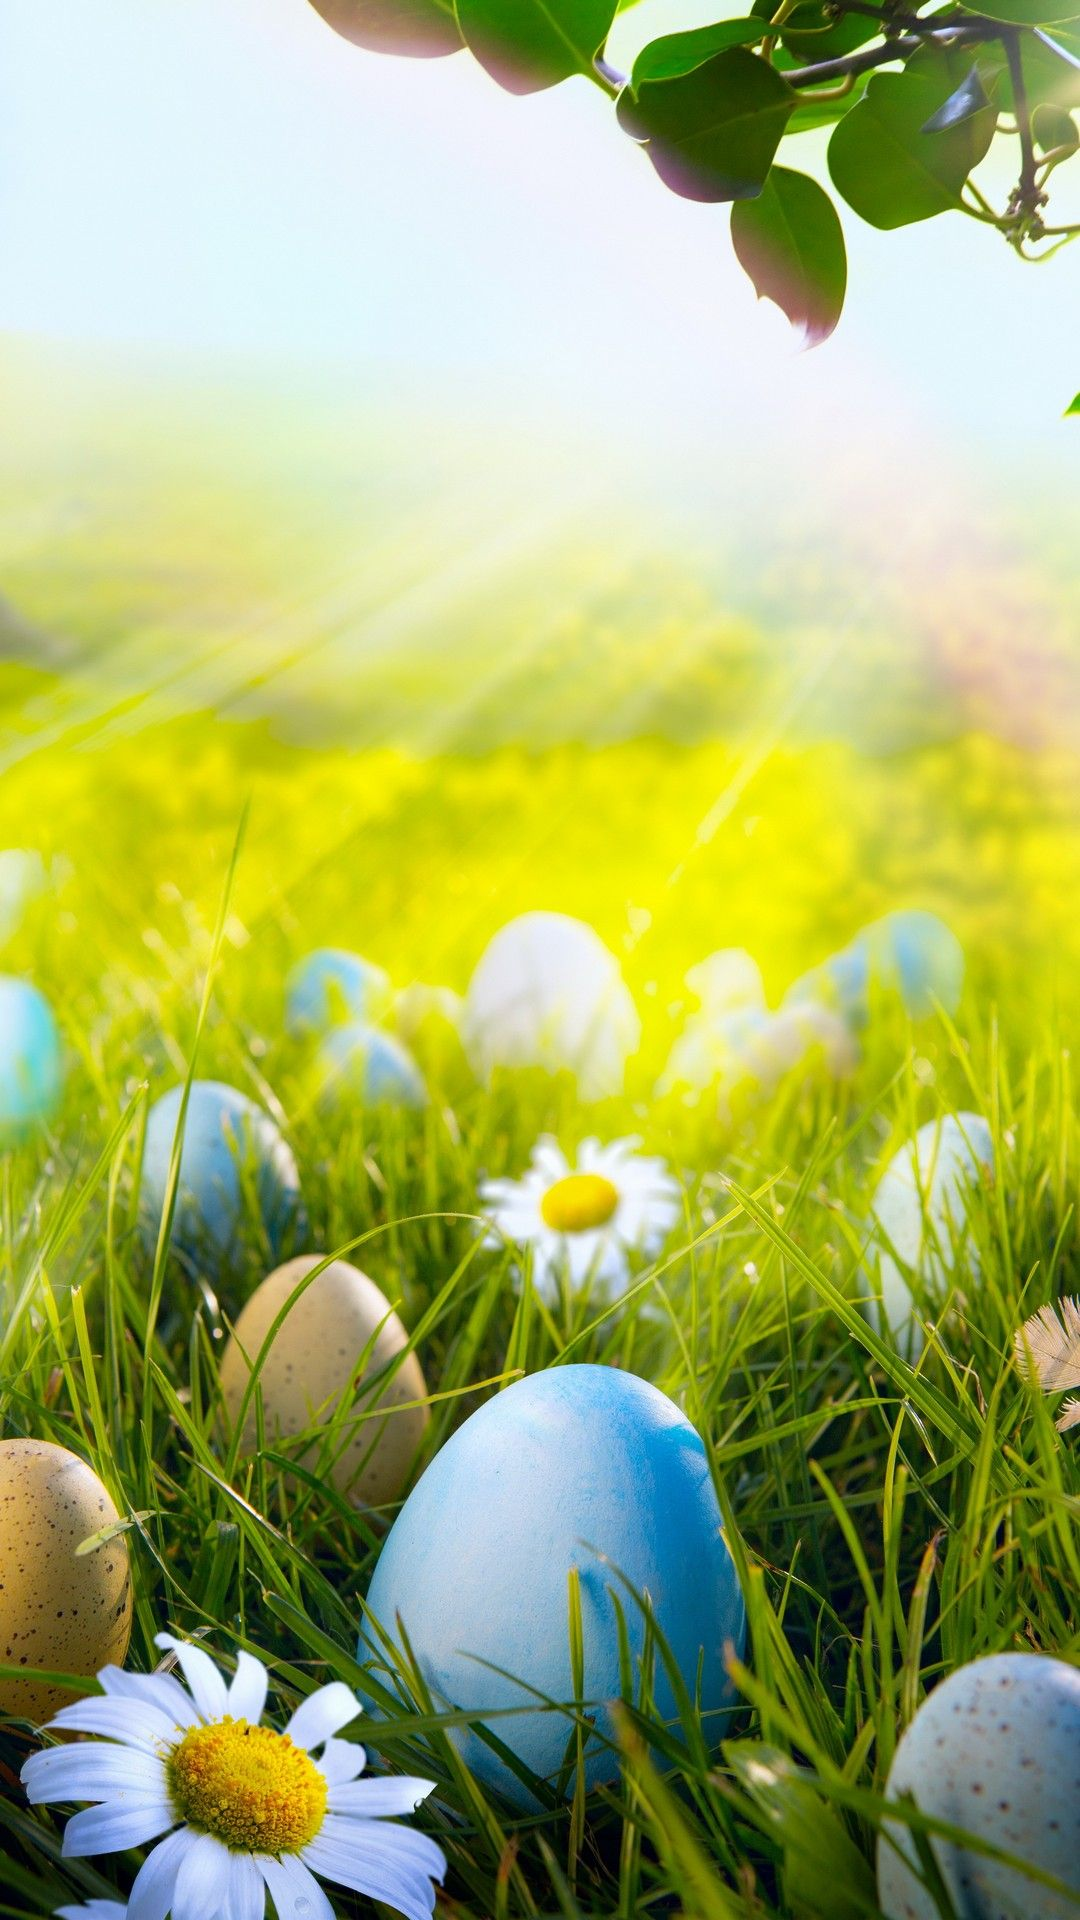 Spring Wallpaper Android - Best Android Wallpapers ...